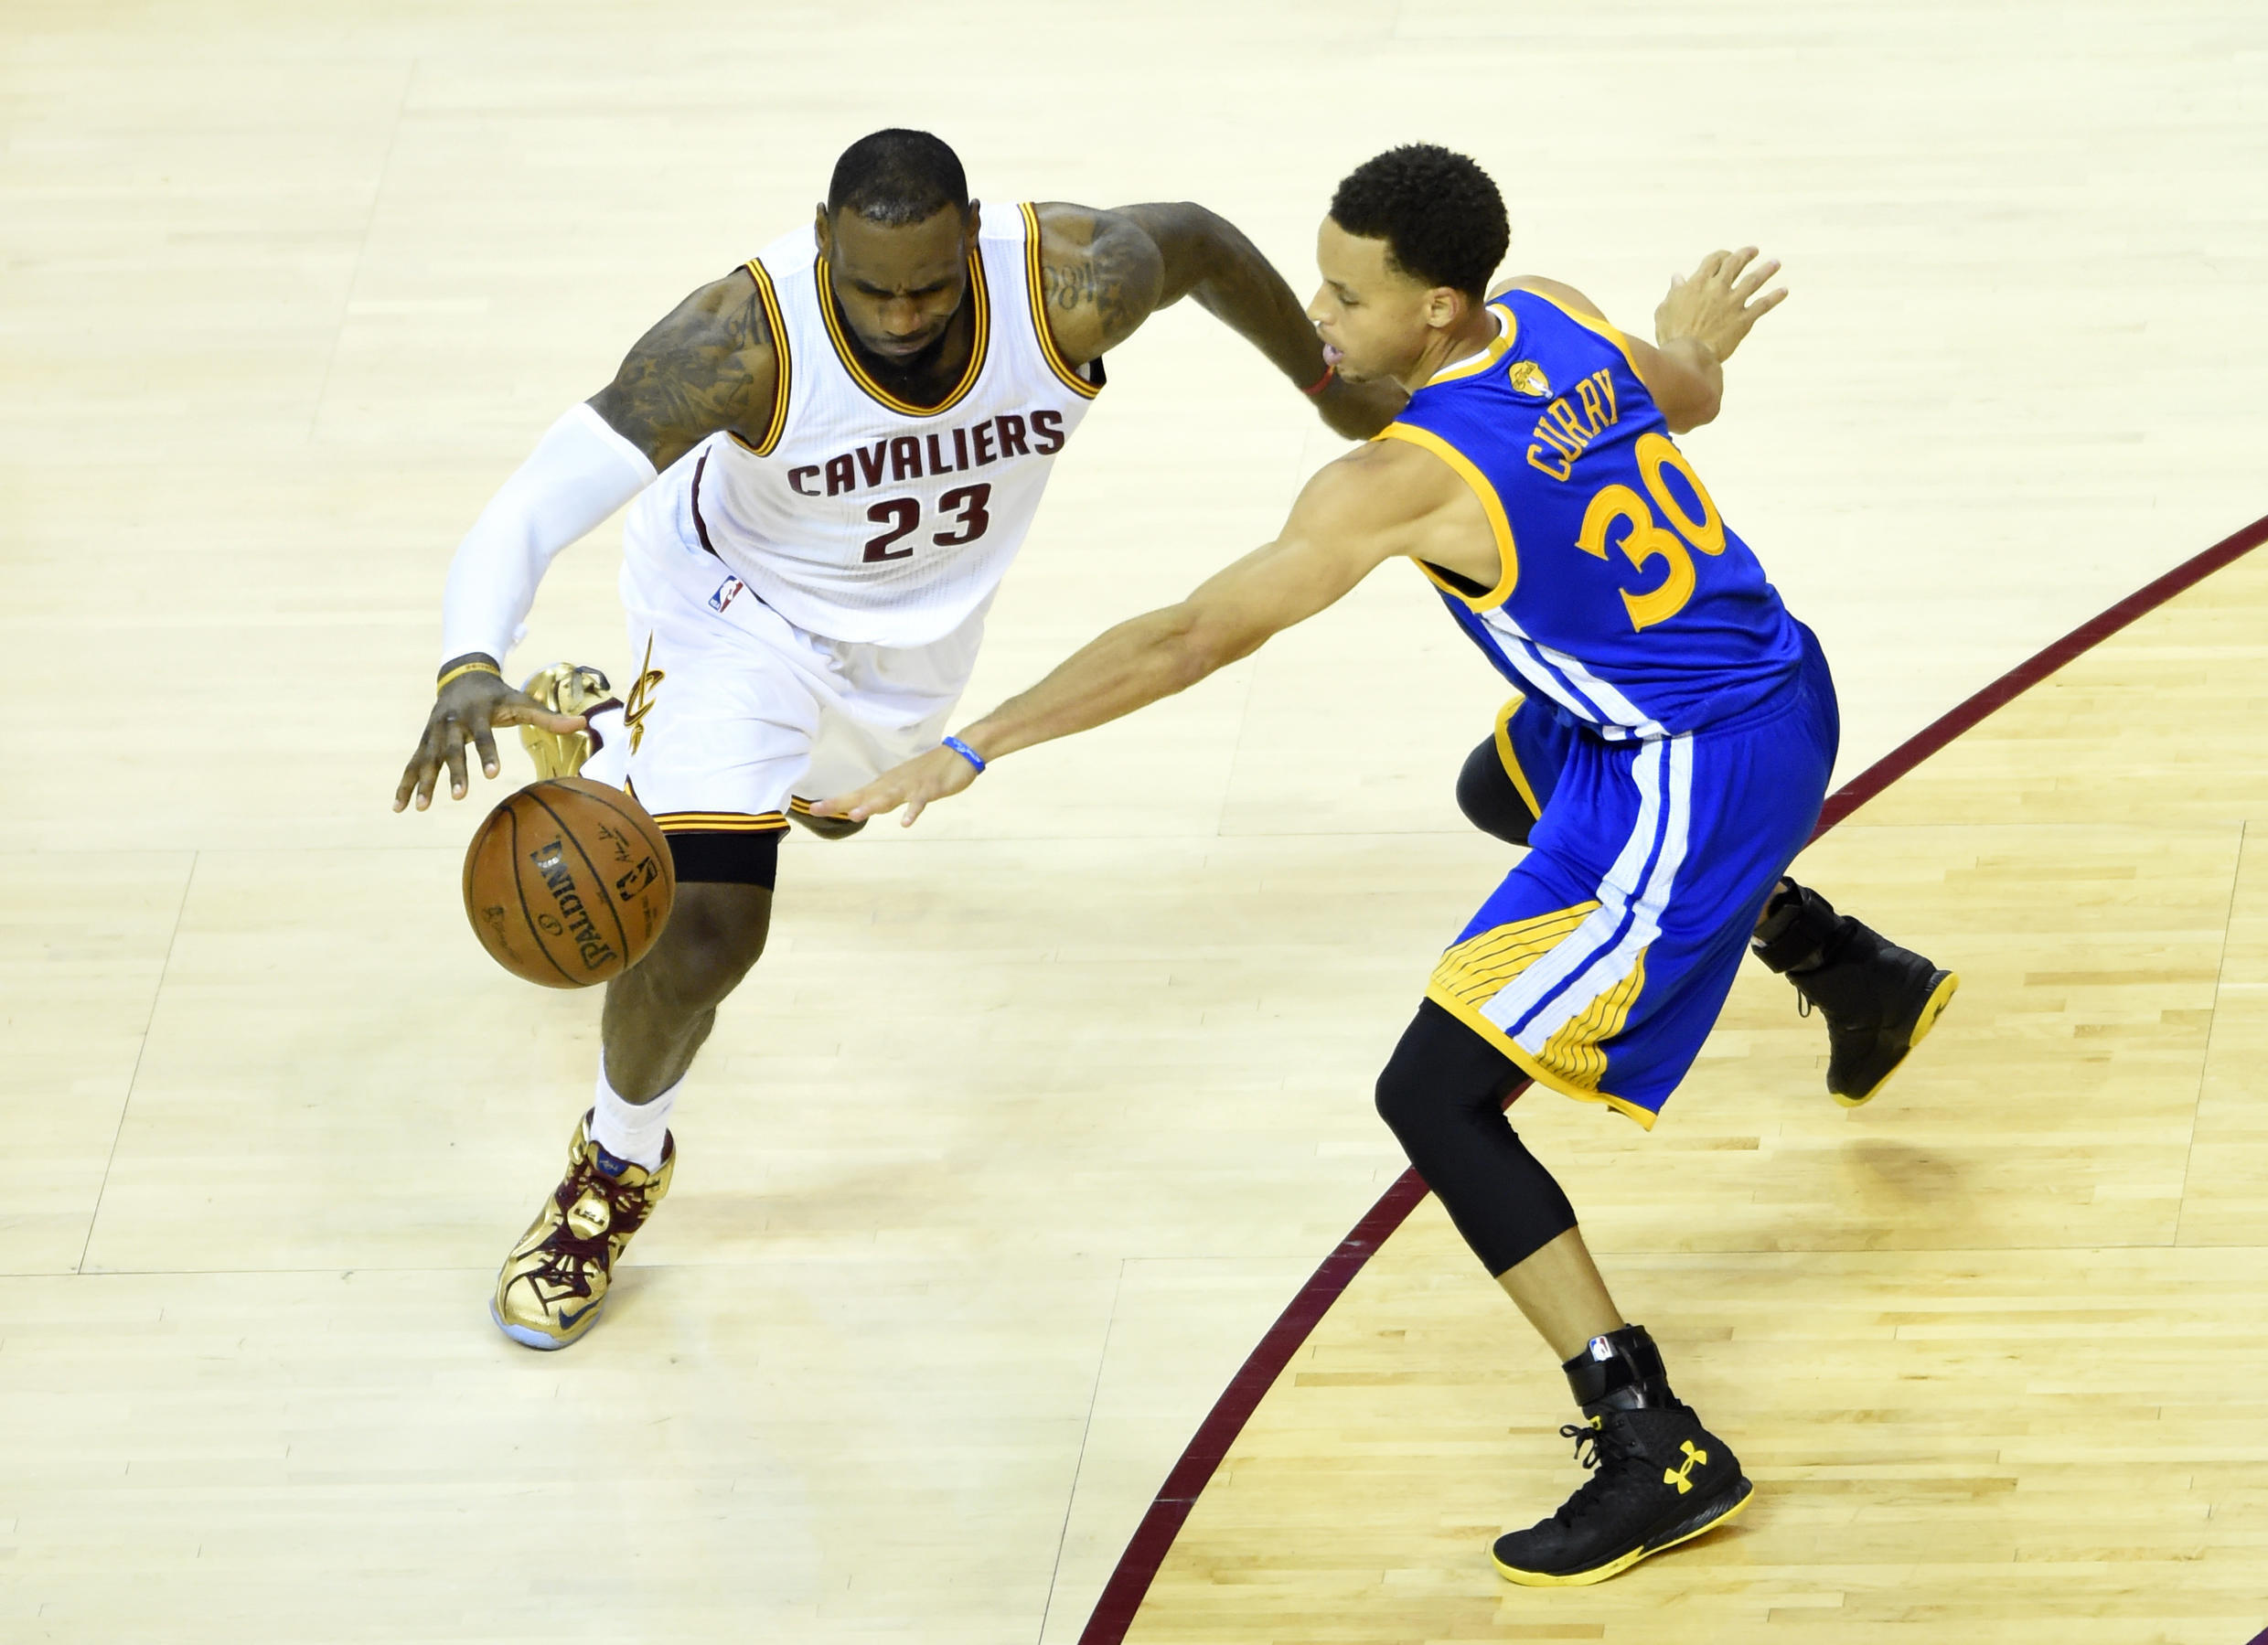 LeBron James (à gauche) face à Stephen Curry, lors du match n°6 des finales NBA 2015.